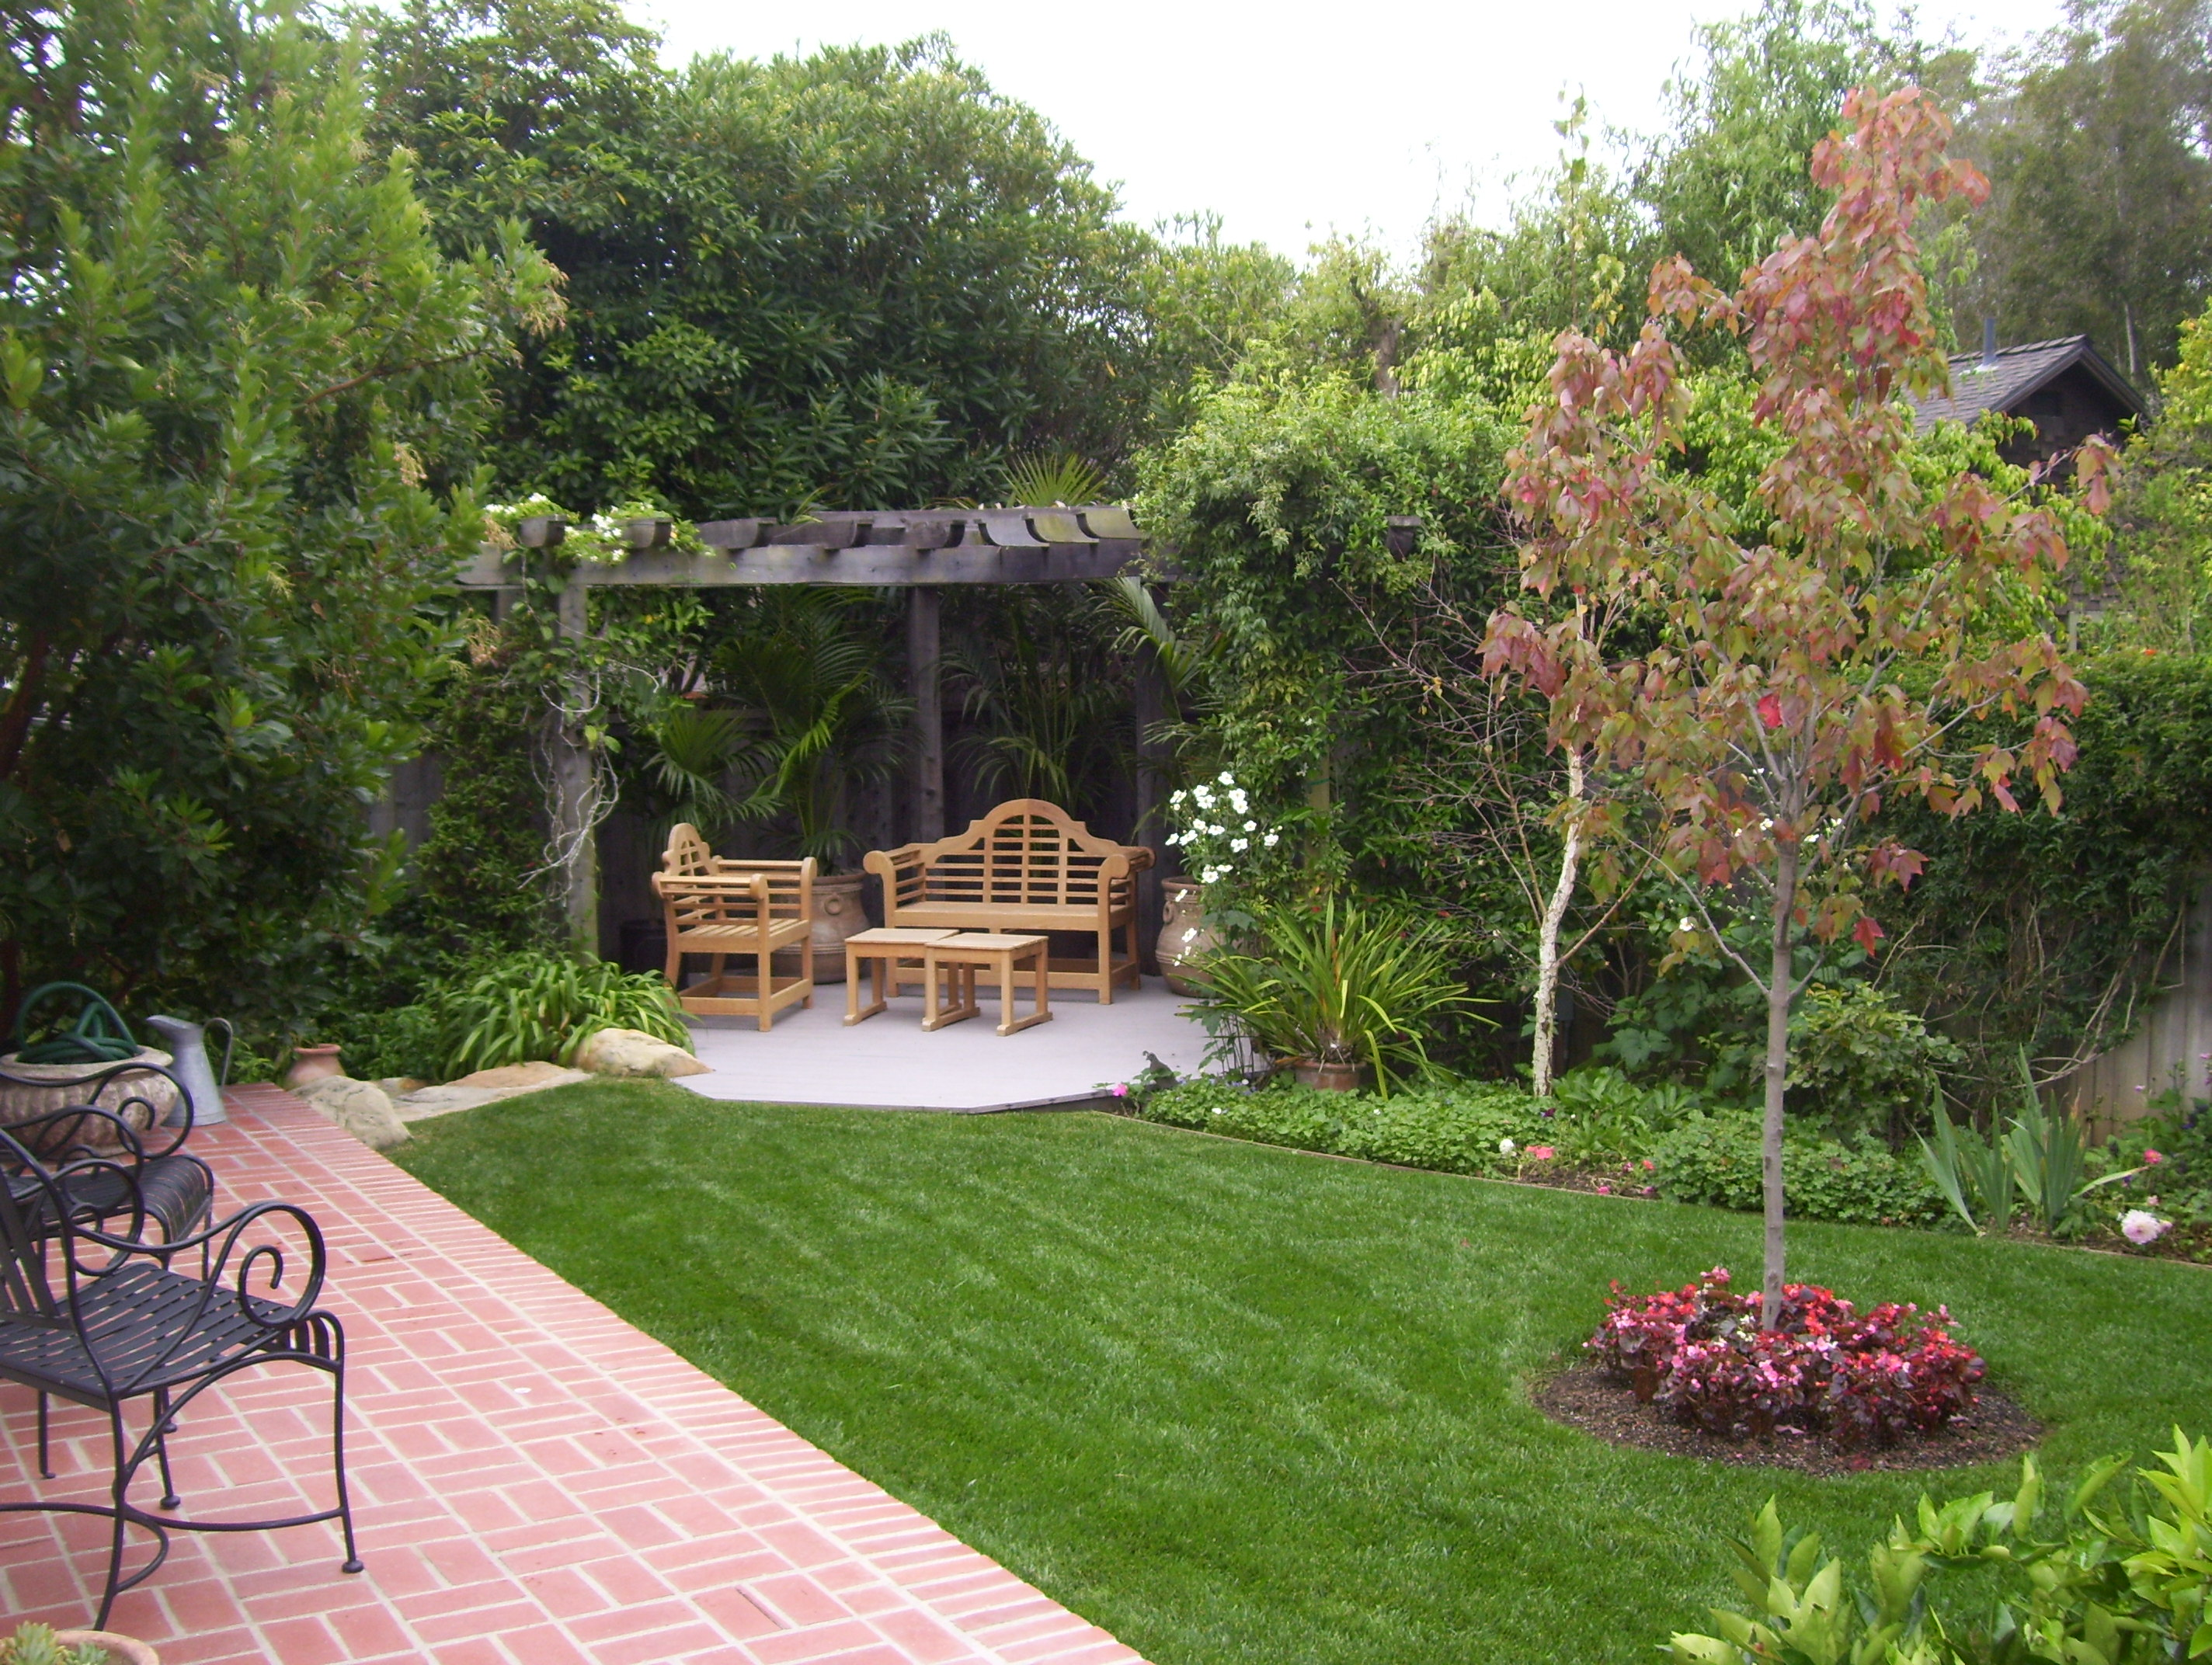 santa barbara lawn and garden maintenenace landscape maintenance i. Black Bedroom Furniture Sets. Home Design Ideas